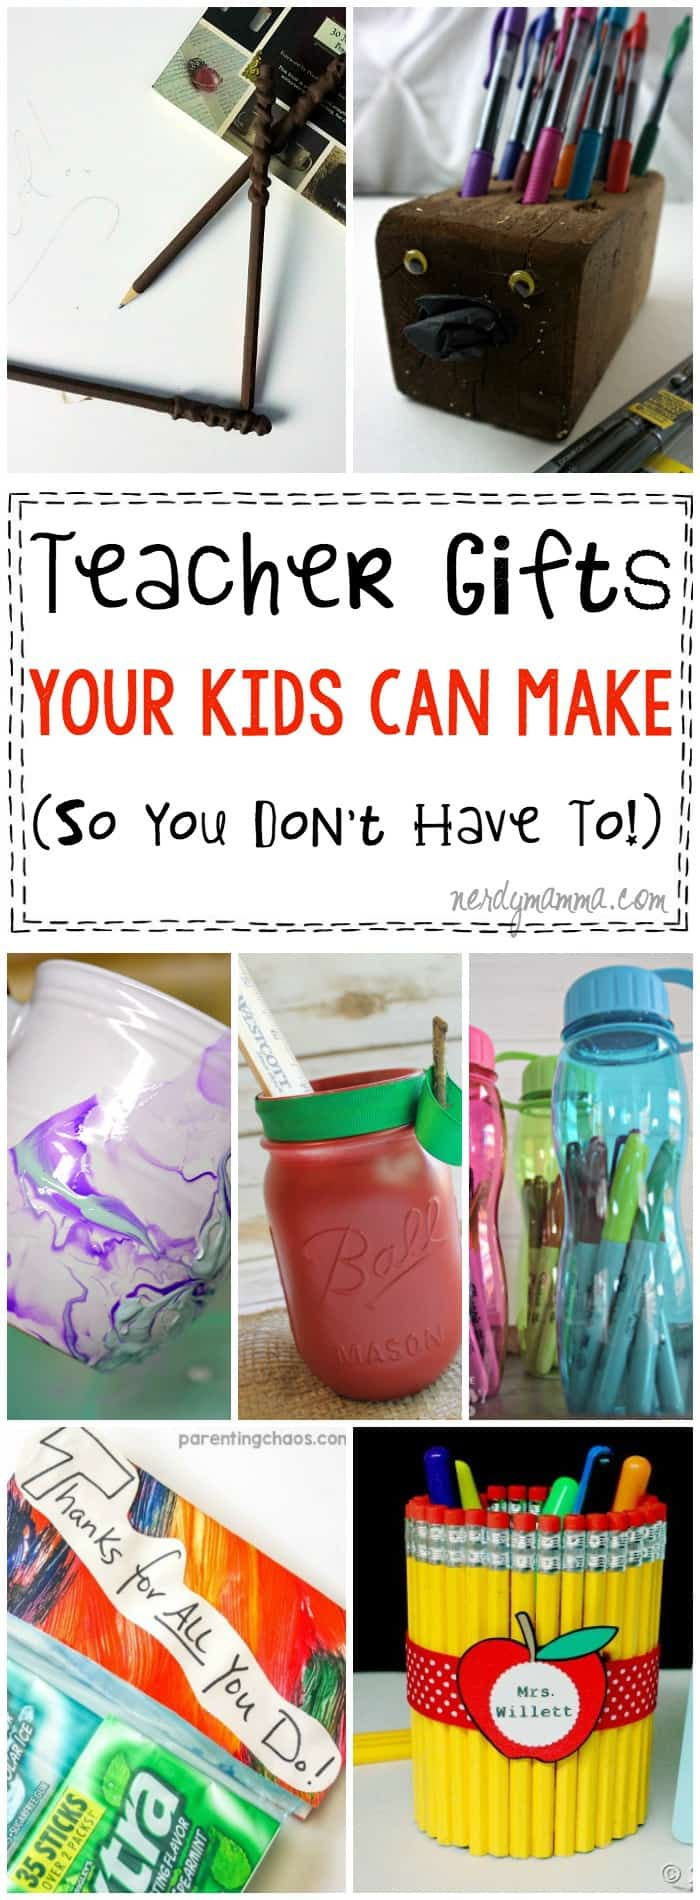 OMG! This post saved my life! It's full of teacher appreciation gifts that kids can make so that I don't have to! Who has time for that anyways!?